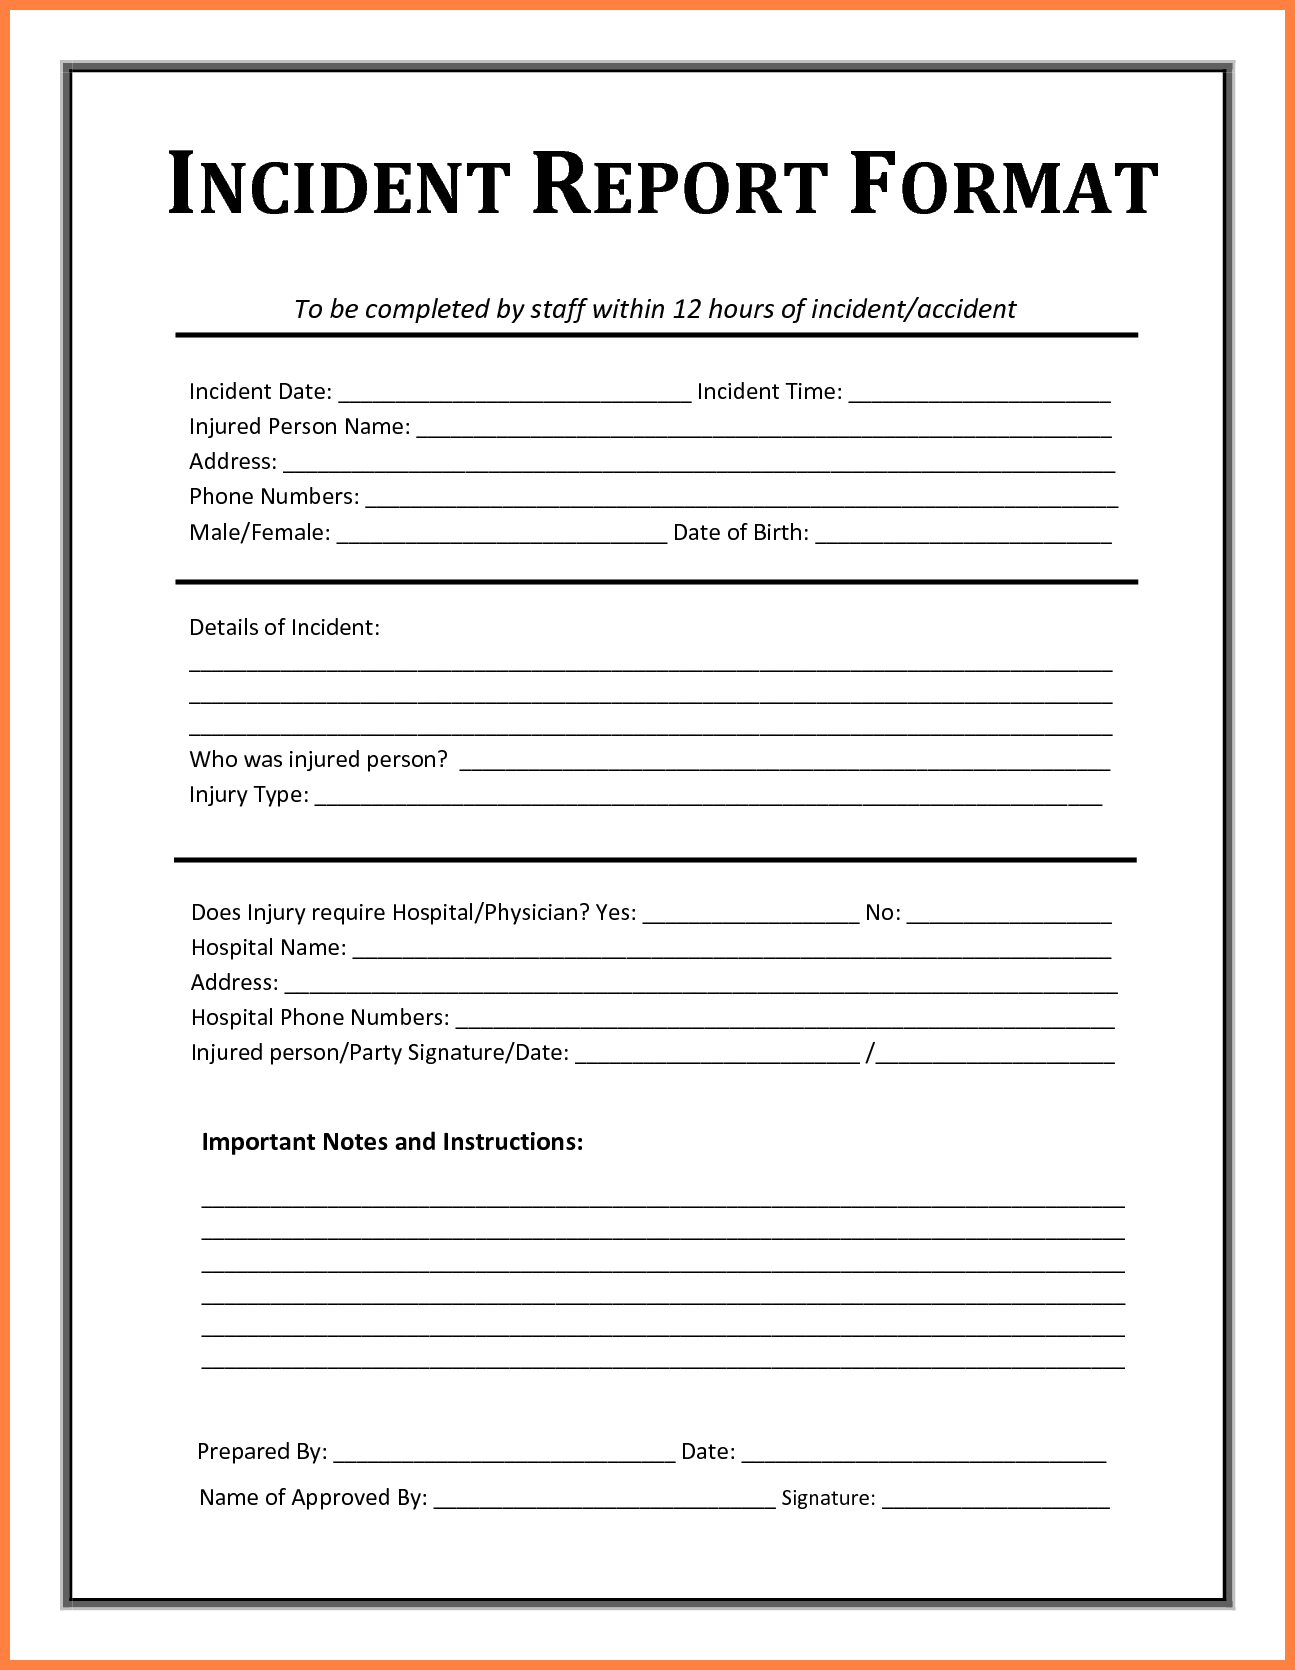 Incident Report Form Template Microsoft Excel #daycareforms #daycare - Free Printable Incident Report Form